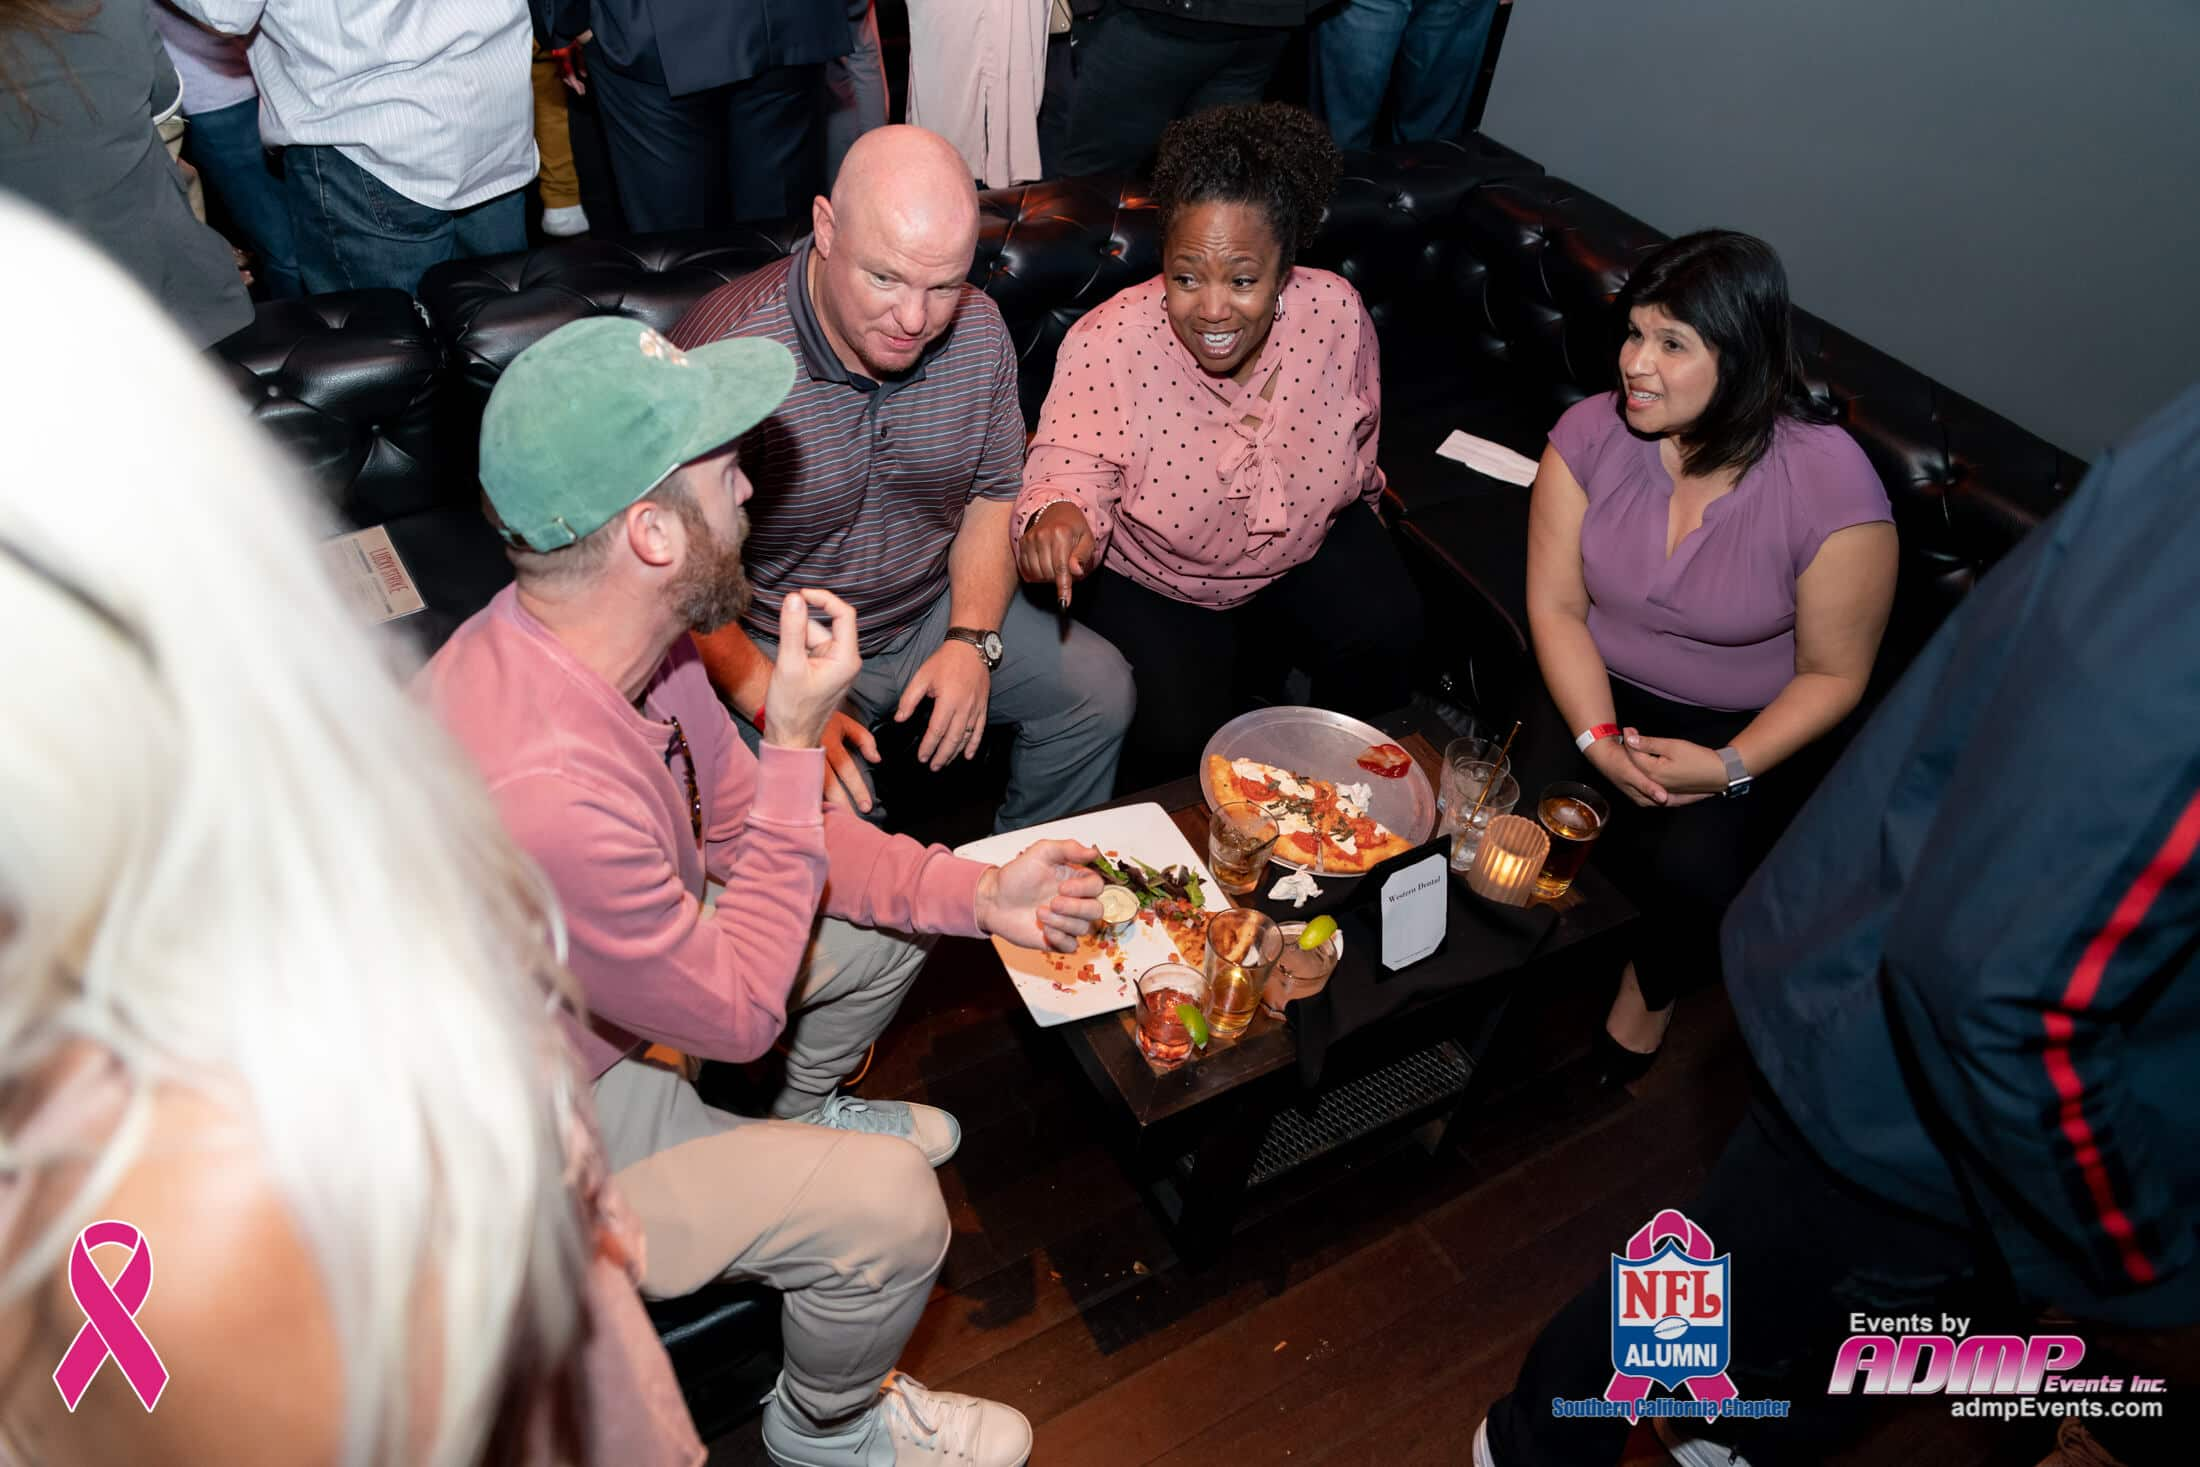 NFL Alumni SoCal Charity Event Series Breast Cancer Event 10-14-19-155